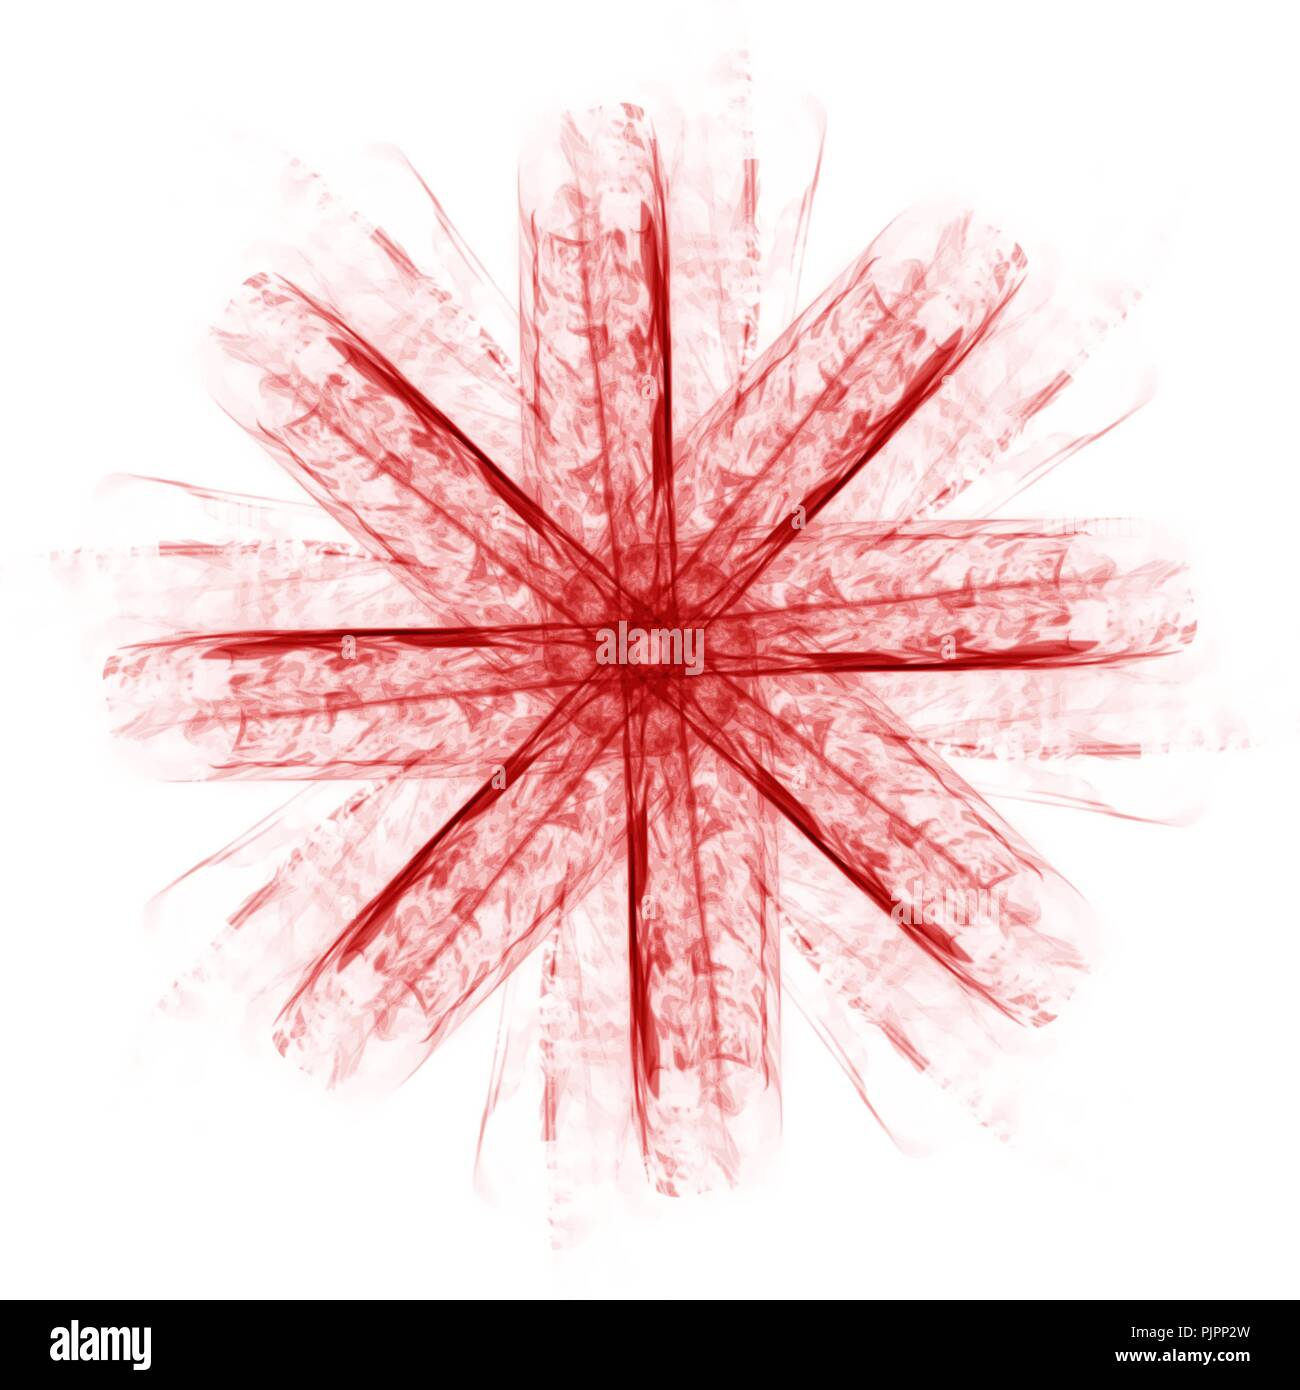 red lucent mandala star watercolor pattern on white background, vector illustration - Stock Image